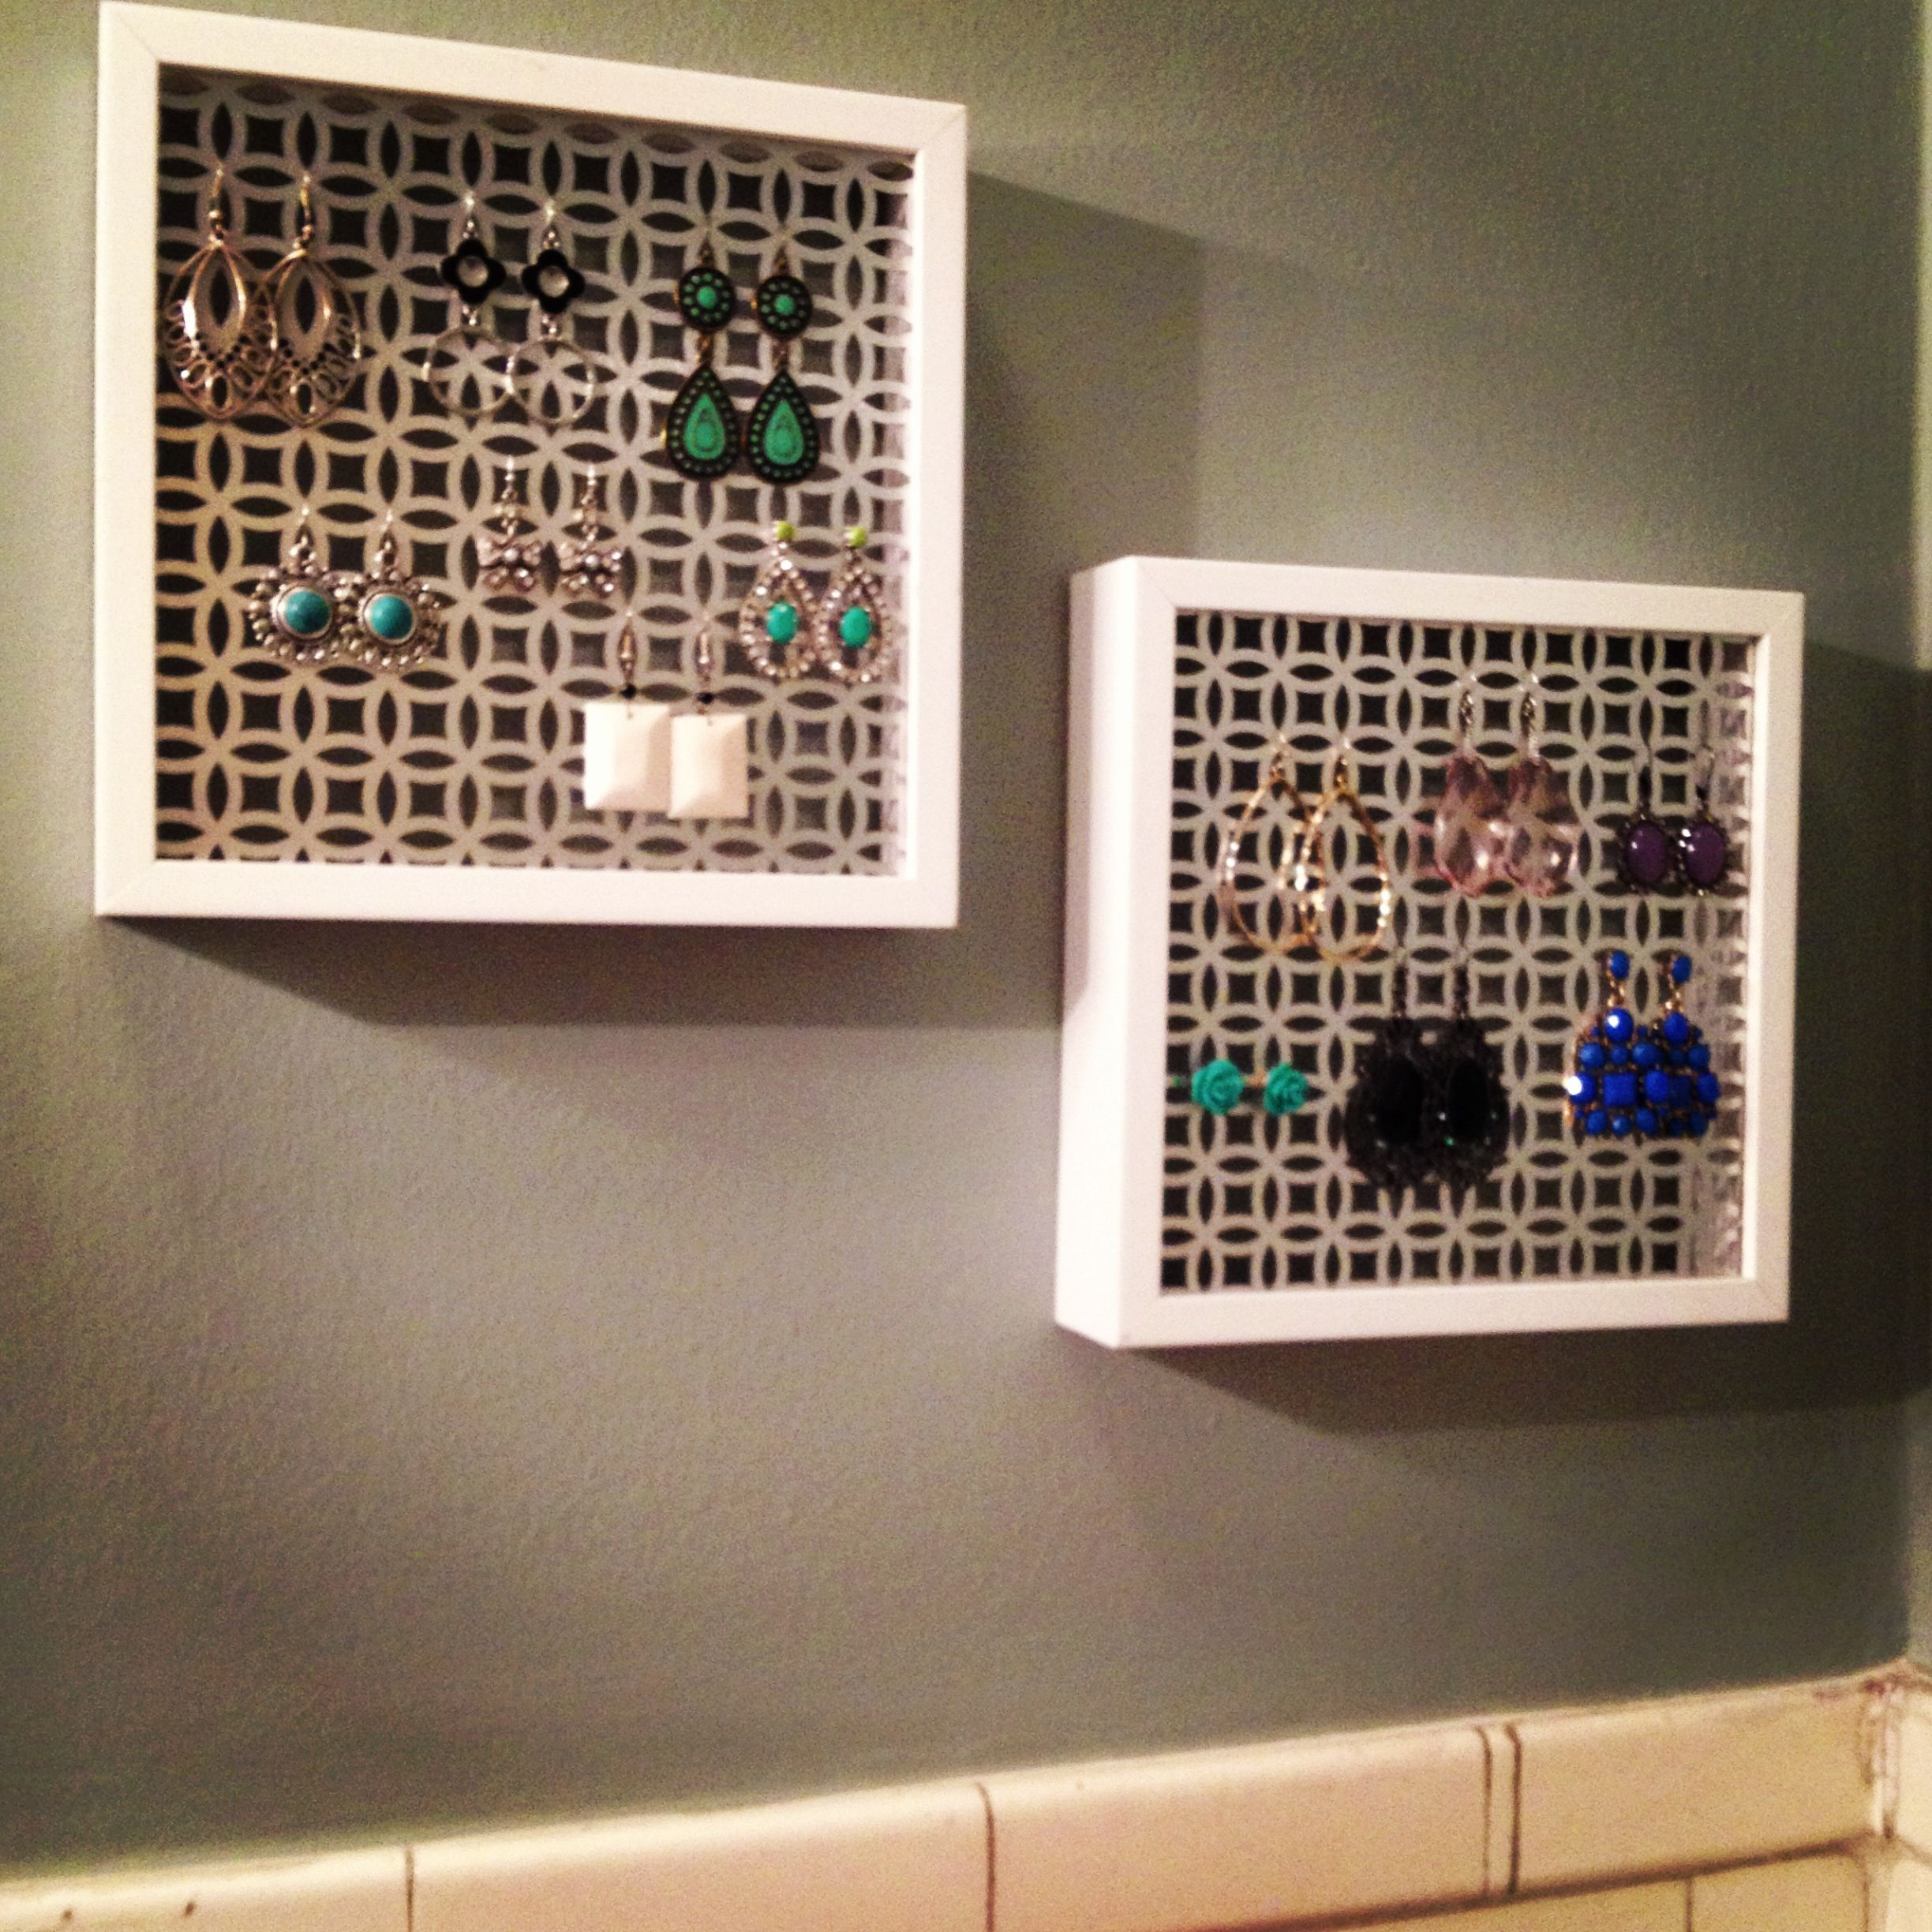 Decorative Return Air Vent Cover Diy Cabinet Grate Made From A Radiator Cover That Was Spray